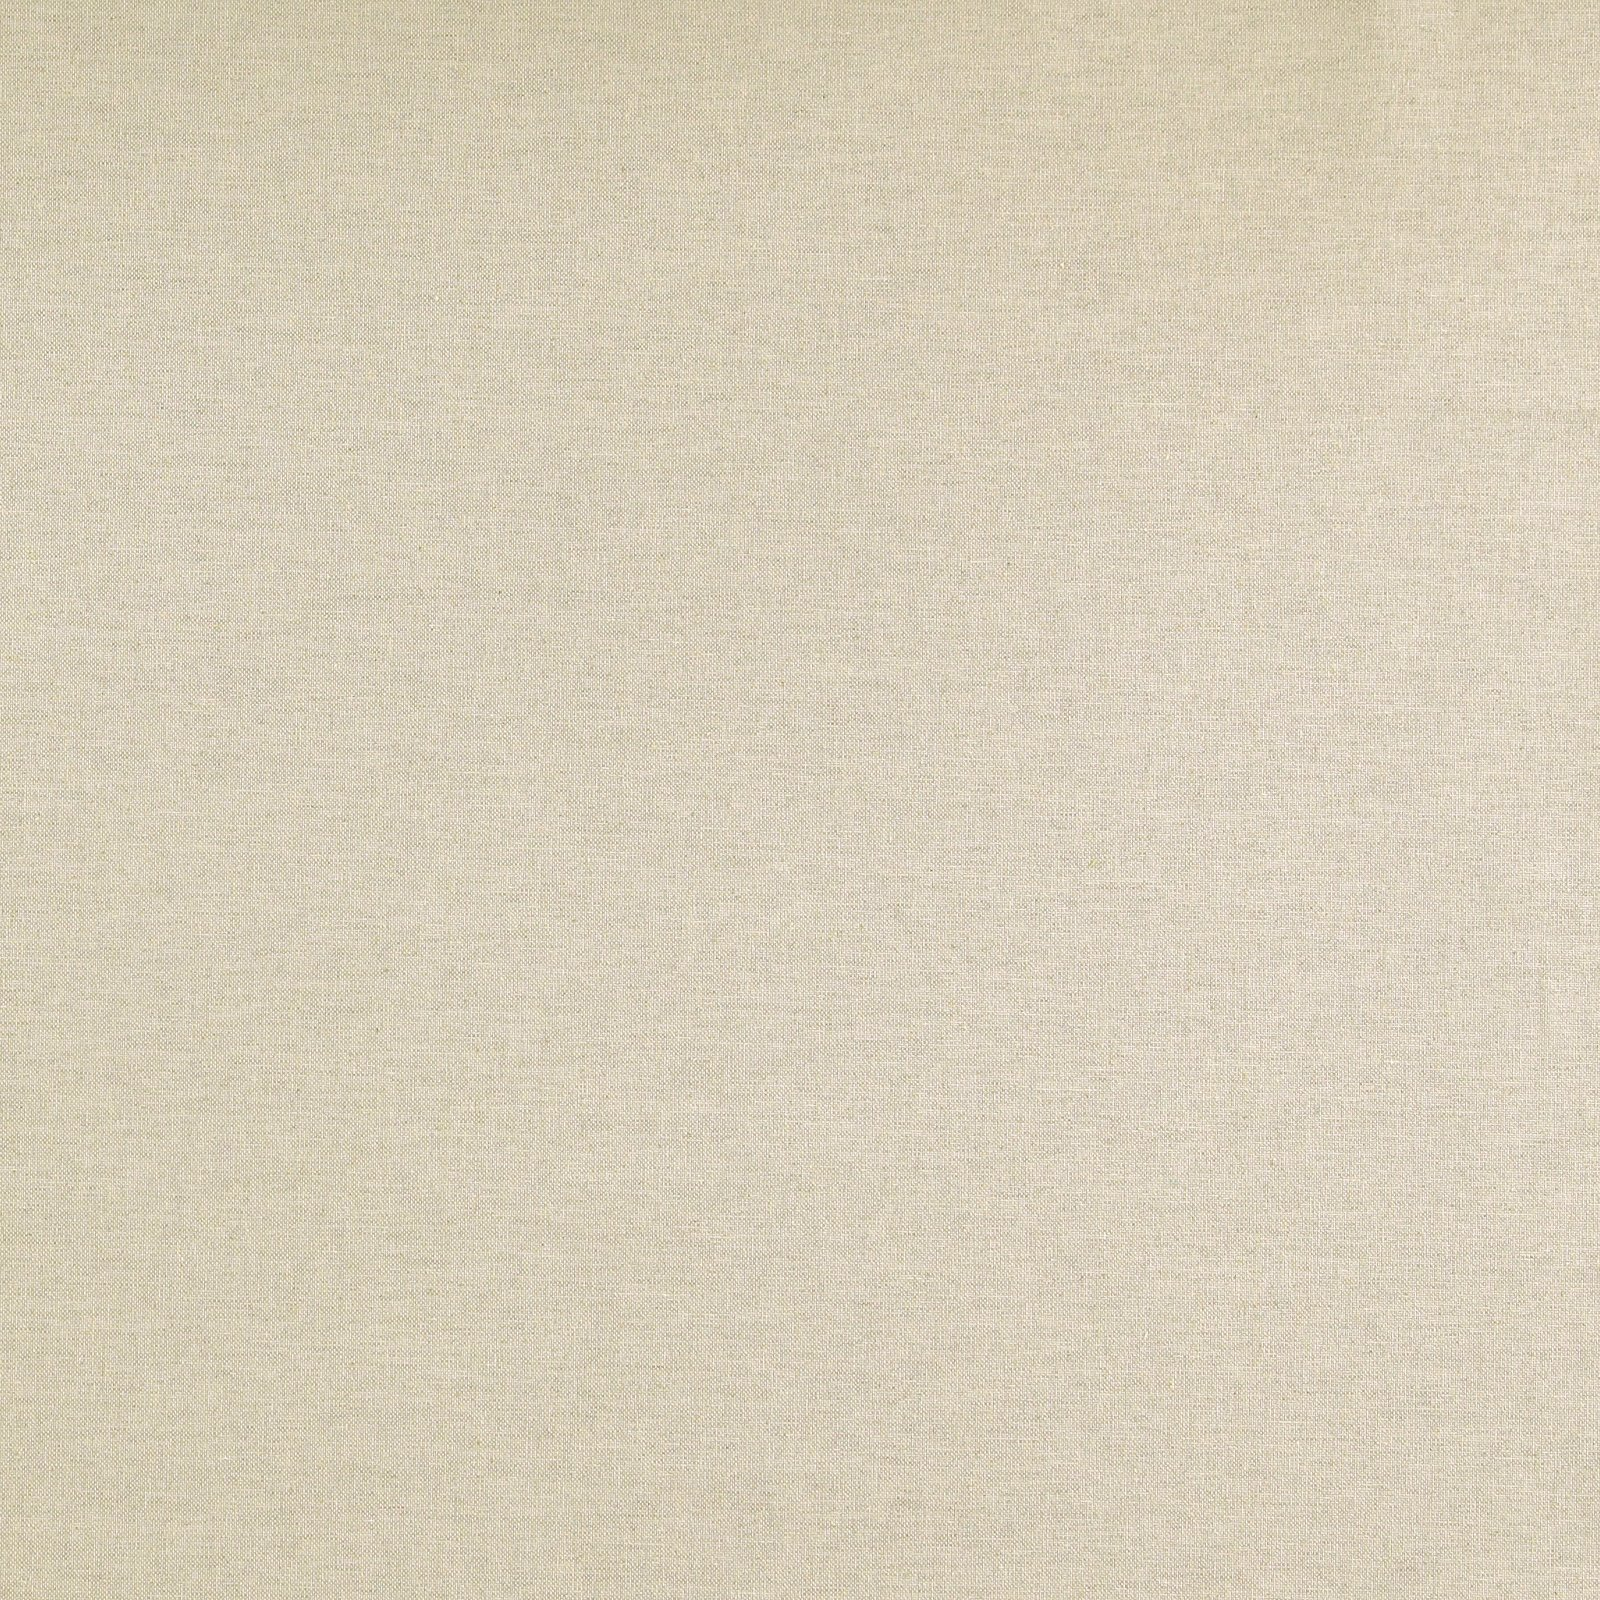 Woven oilcloth linen look/ l grey 160 cm 872301_pack_solid